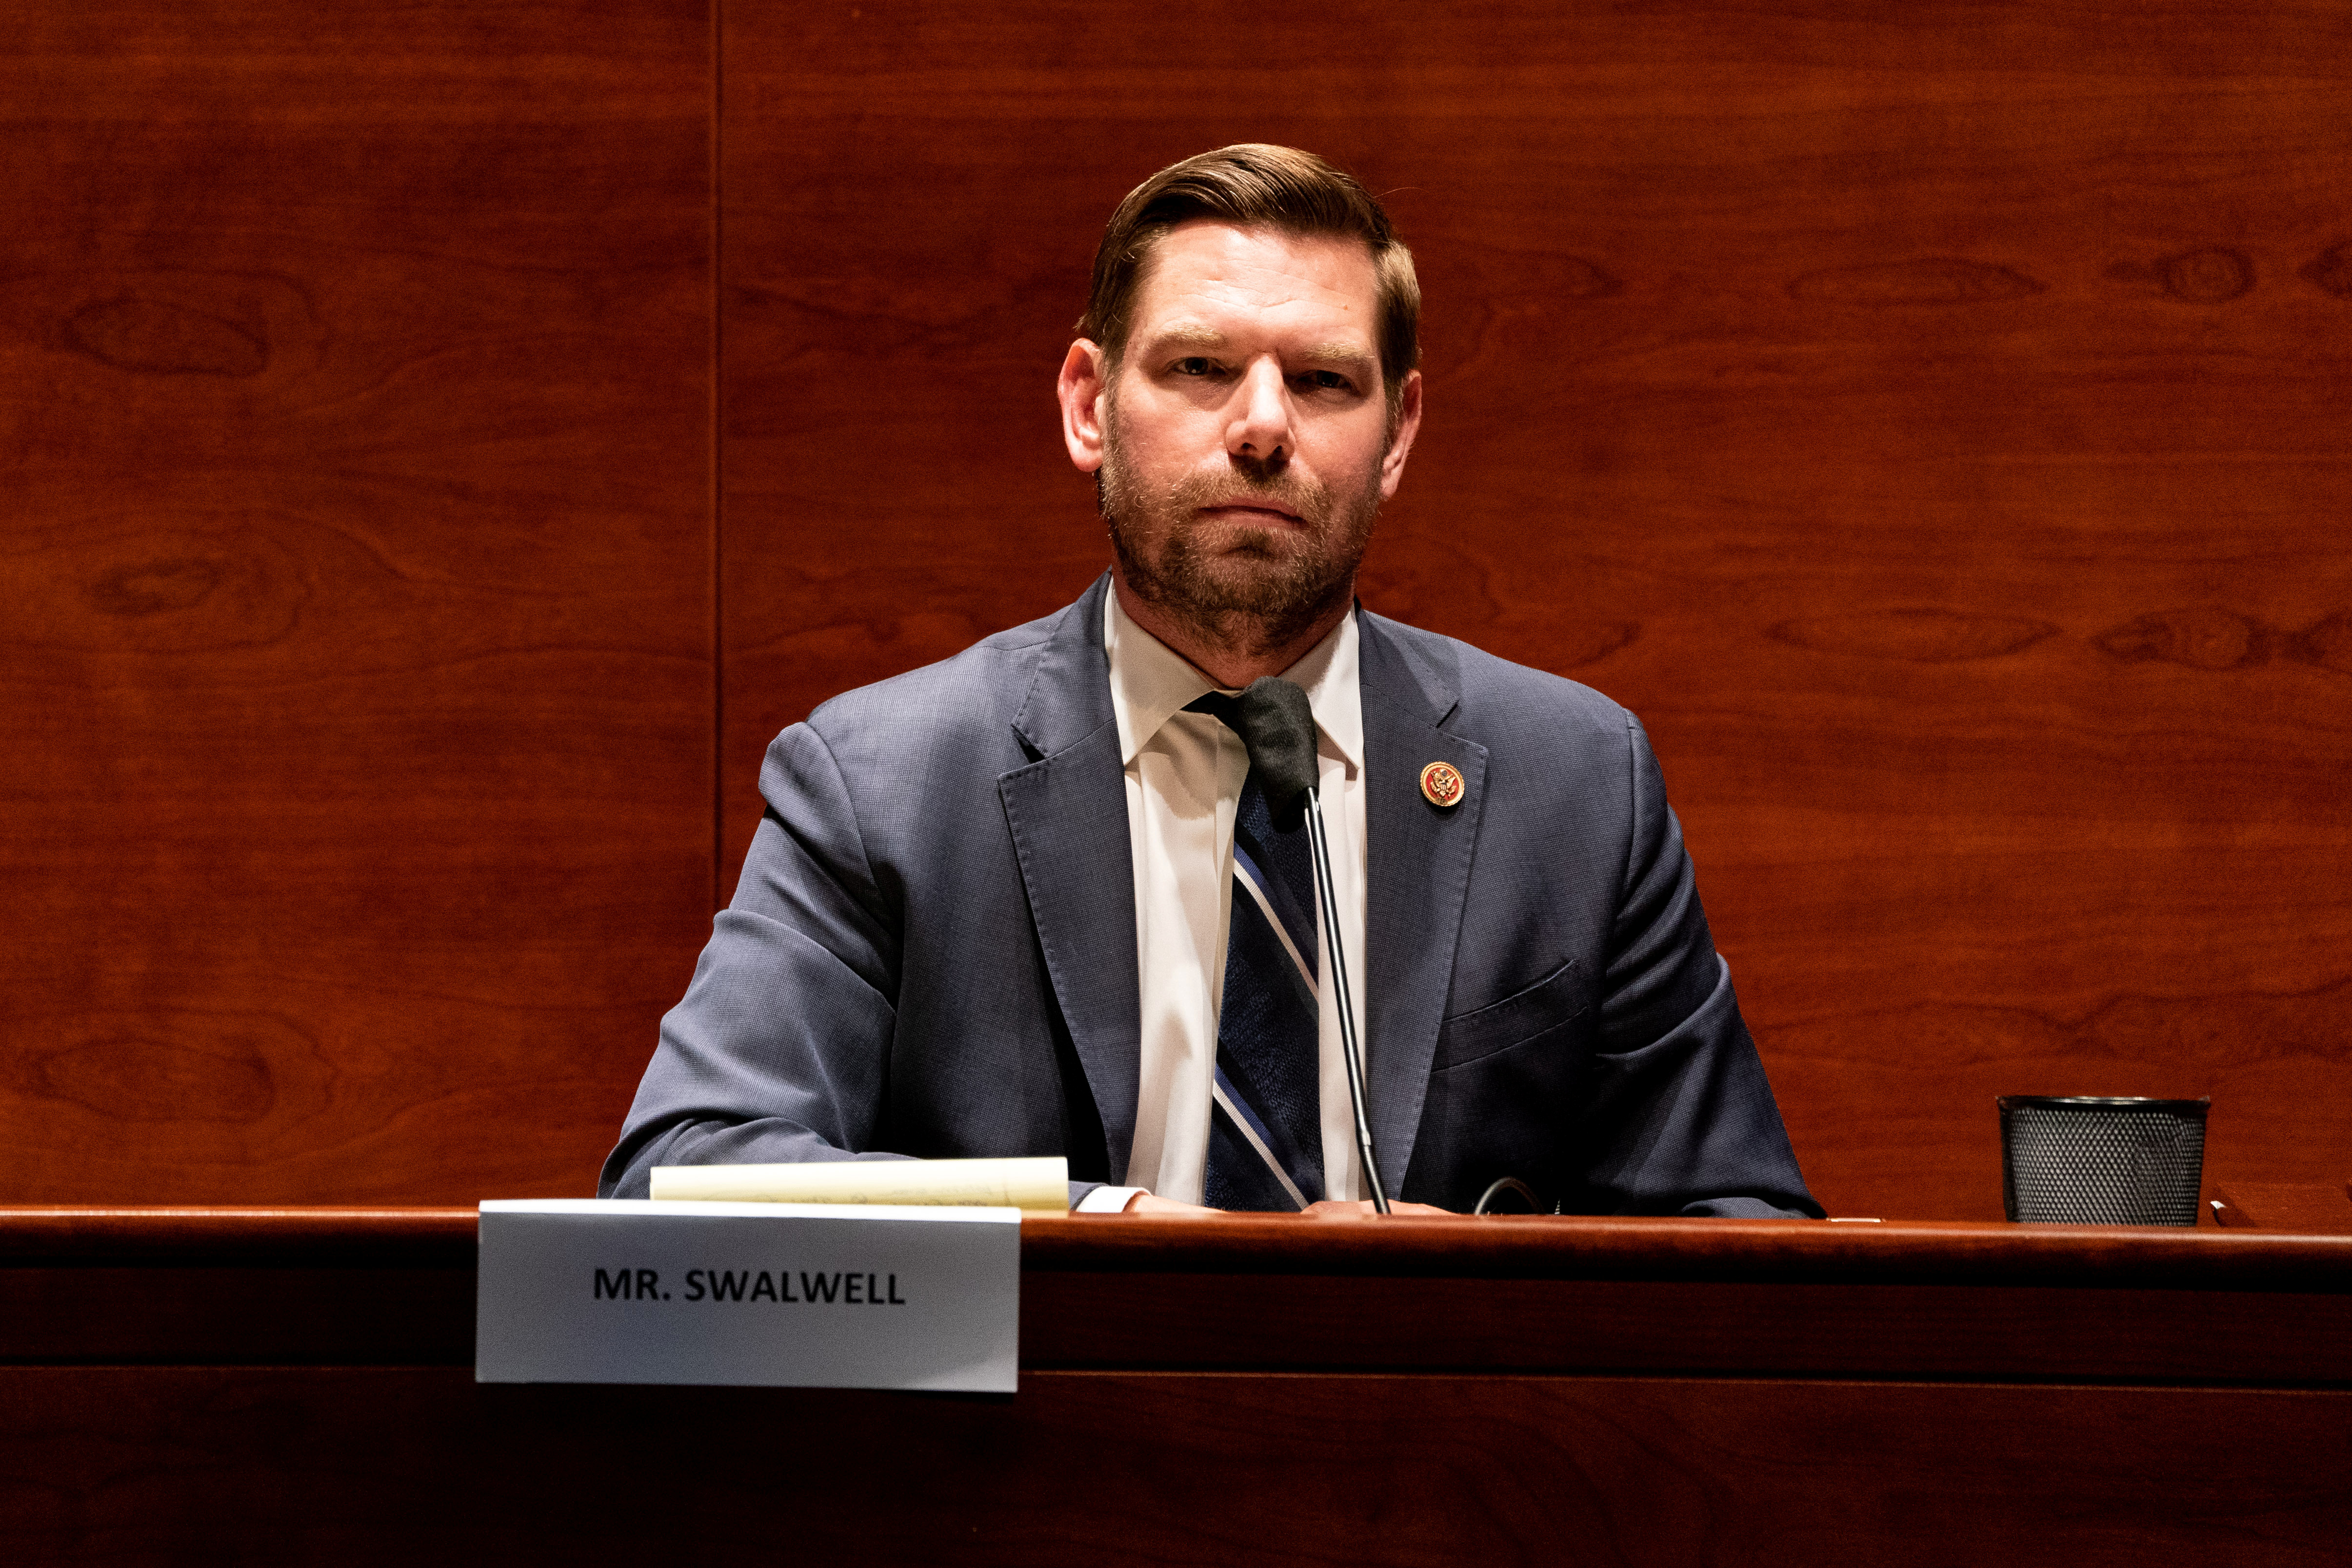 Rep. Eric Swalwell (D-CA) listens during a hearing of the U.S. House Judiciary Committee about political influence on law enforcement activity, including one who worked on Special Counsel Robert Mueller's Russia probe, in Washington, U.S. June 24, 2020.  Anna Moneymaker/Pool via REUTERS